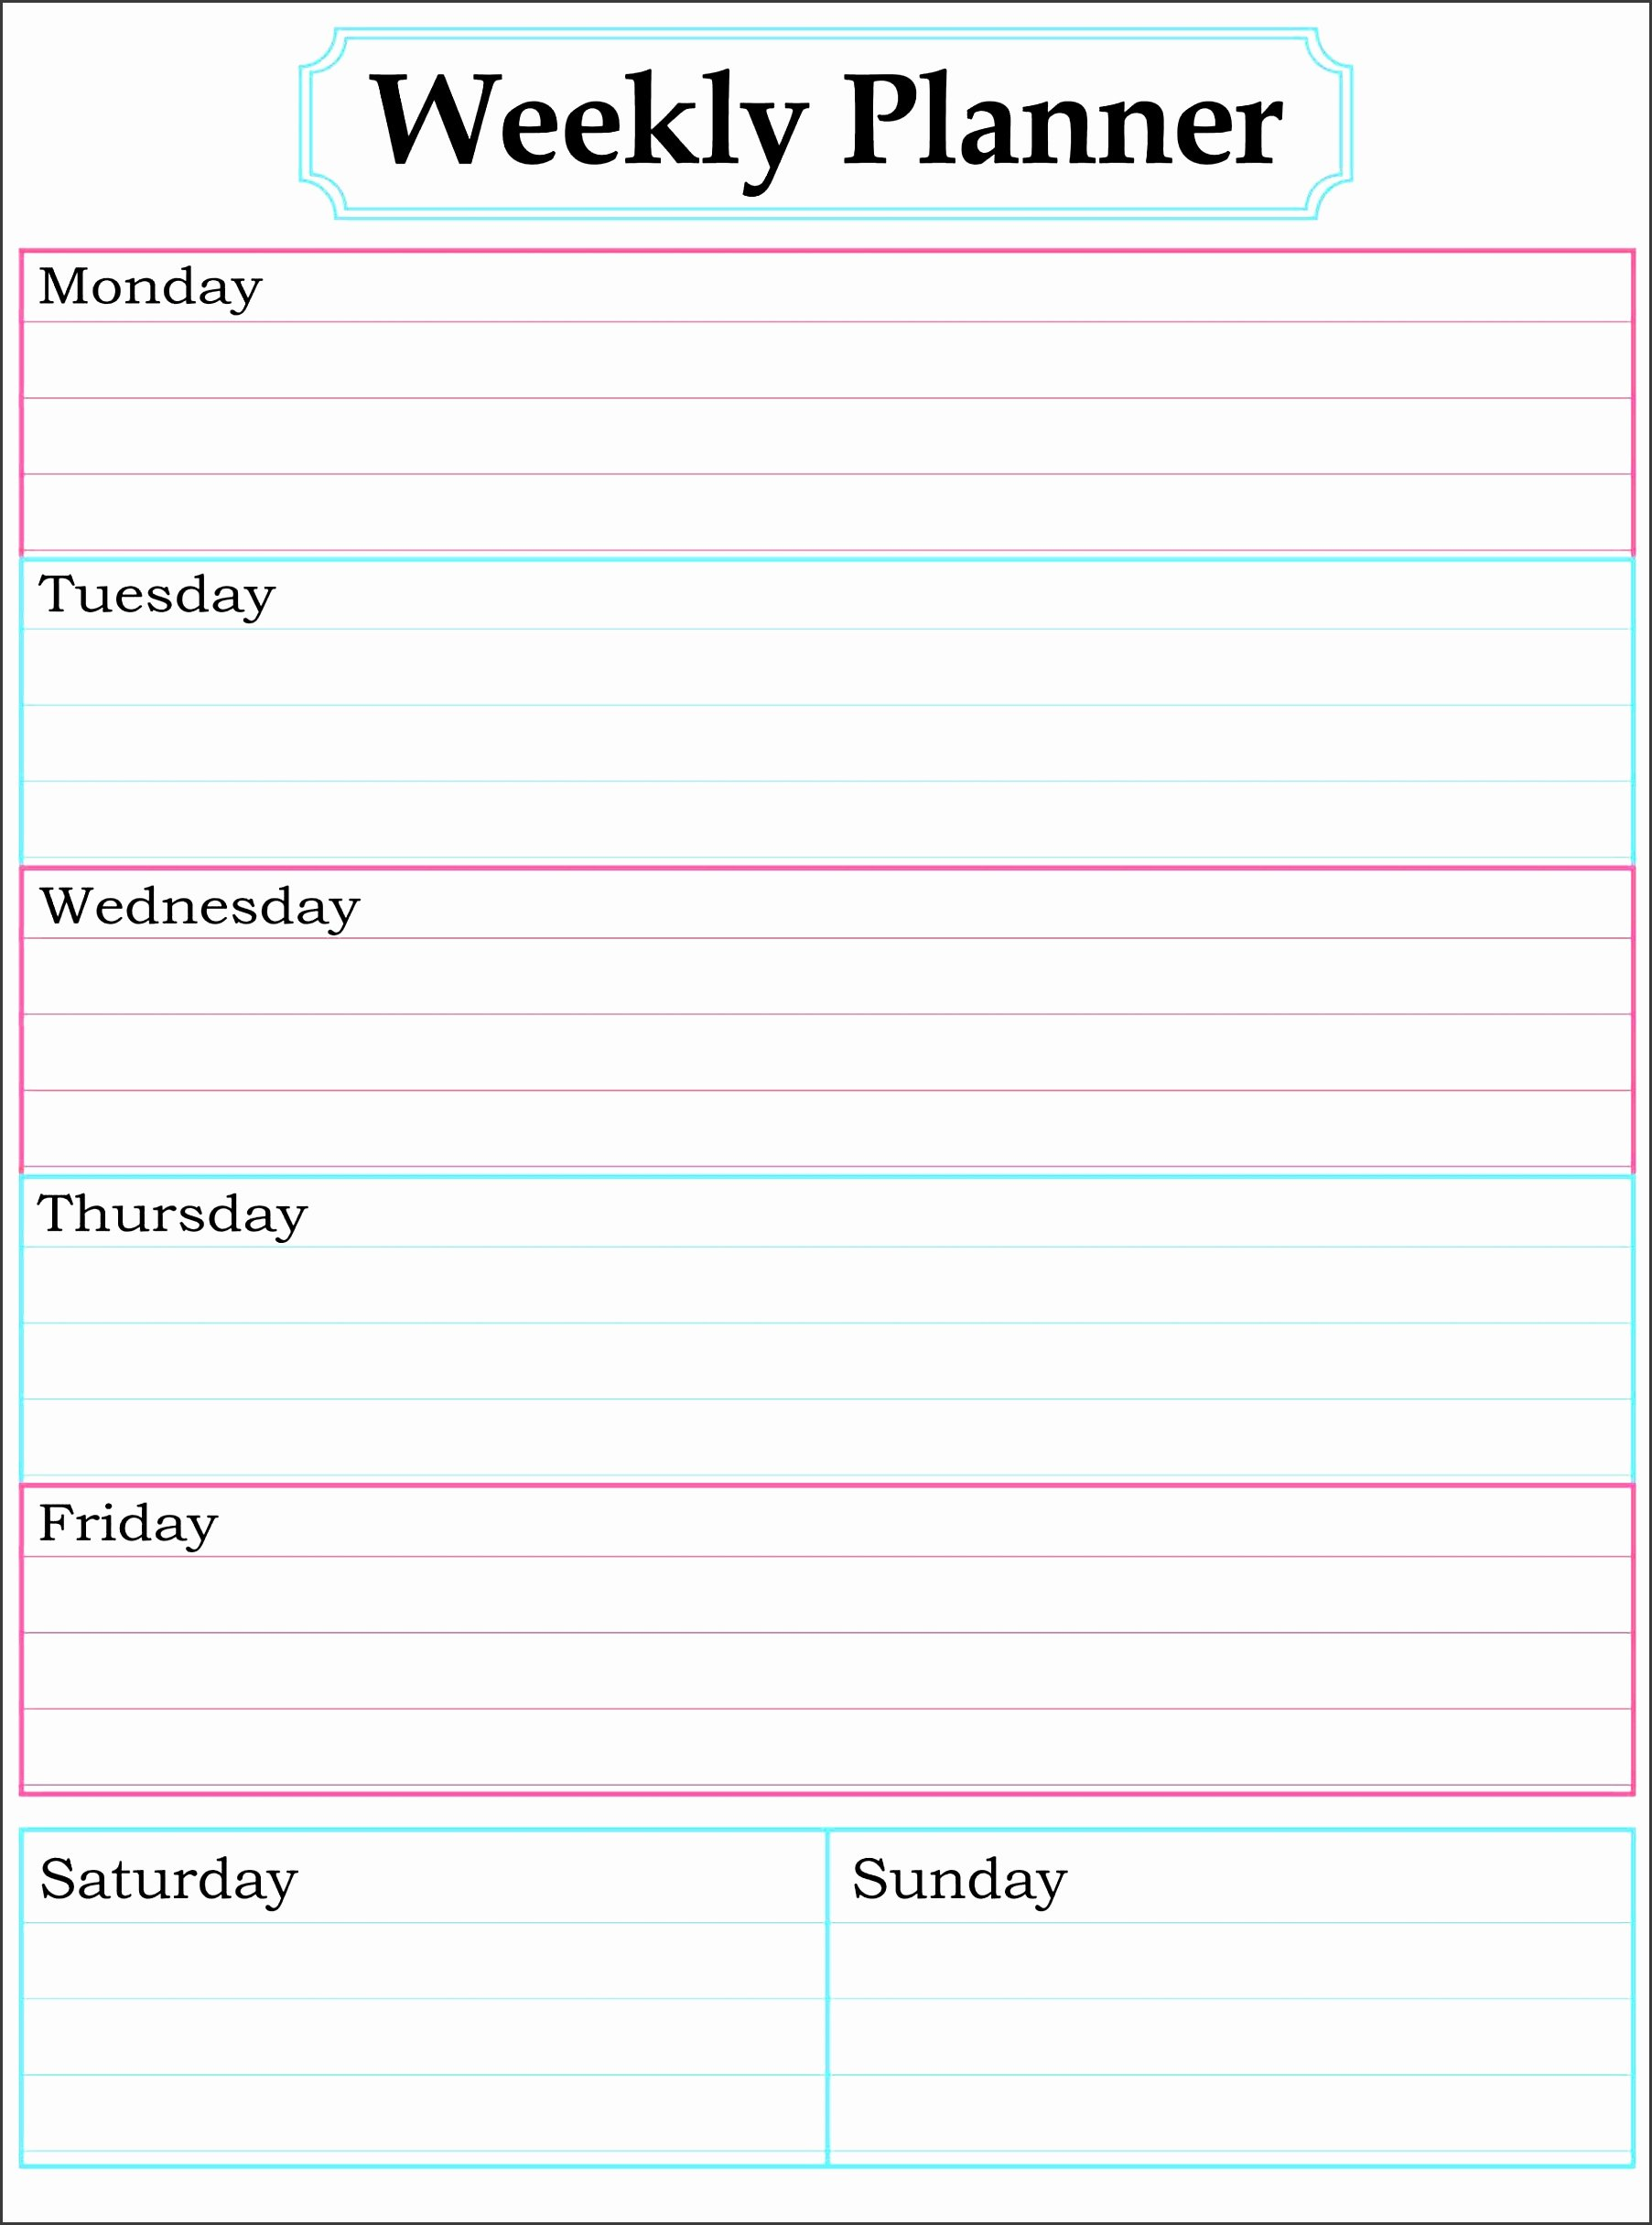 One Week Schedule Template Lovely 11 E Week Planner for Employees Sampletemplatess